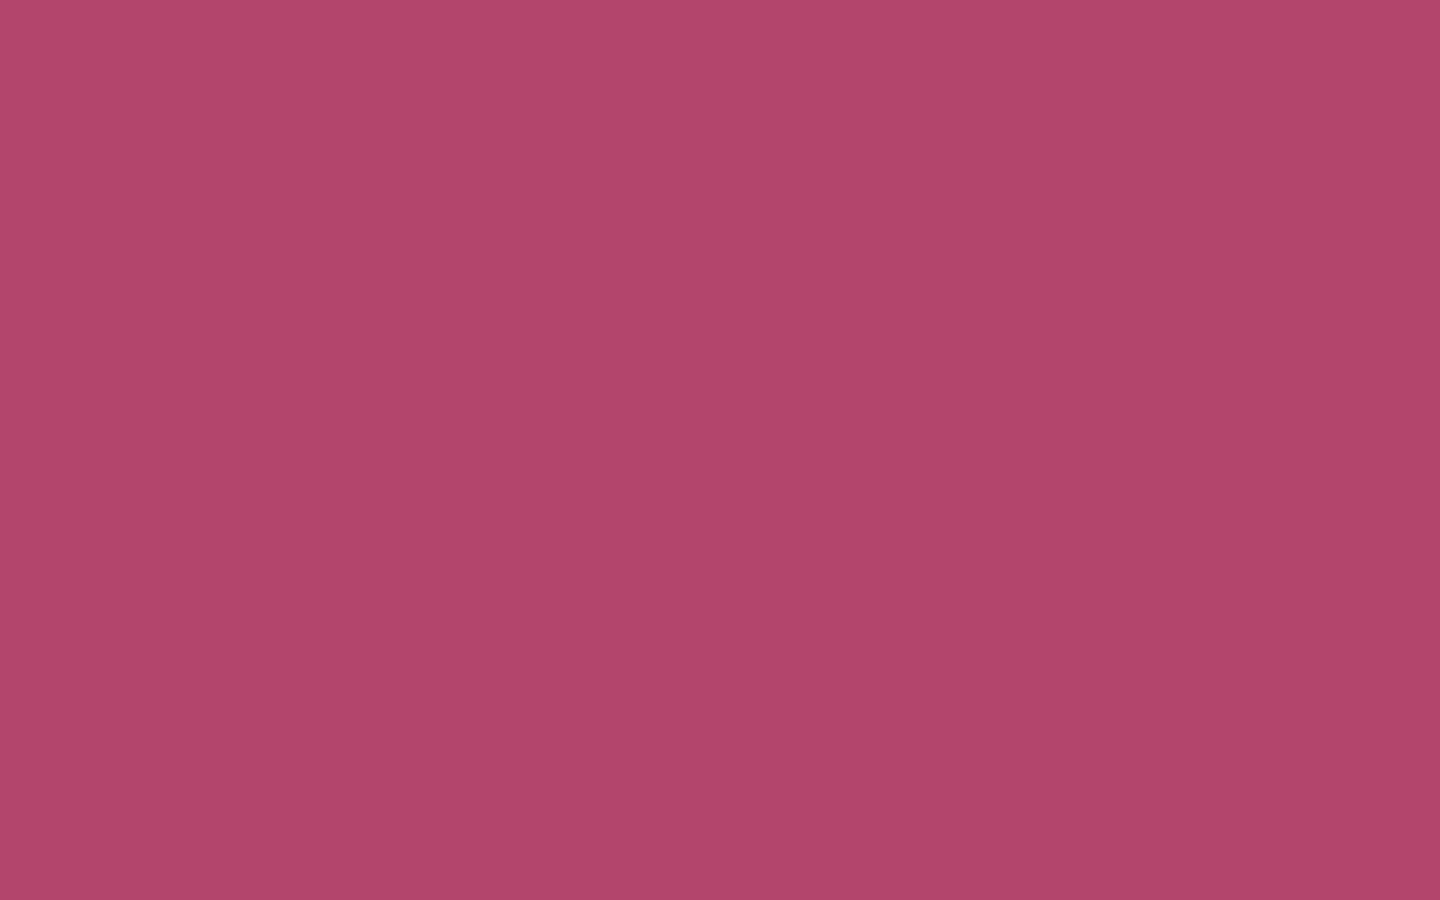 1440x900 Raspberry Rose Solid Color Background